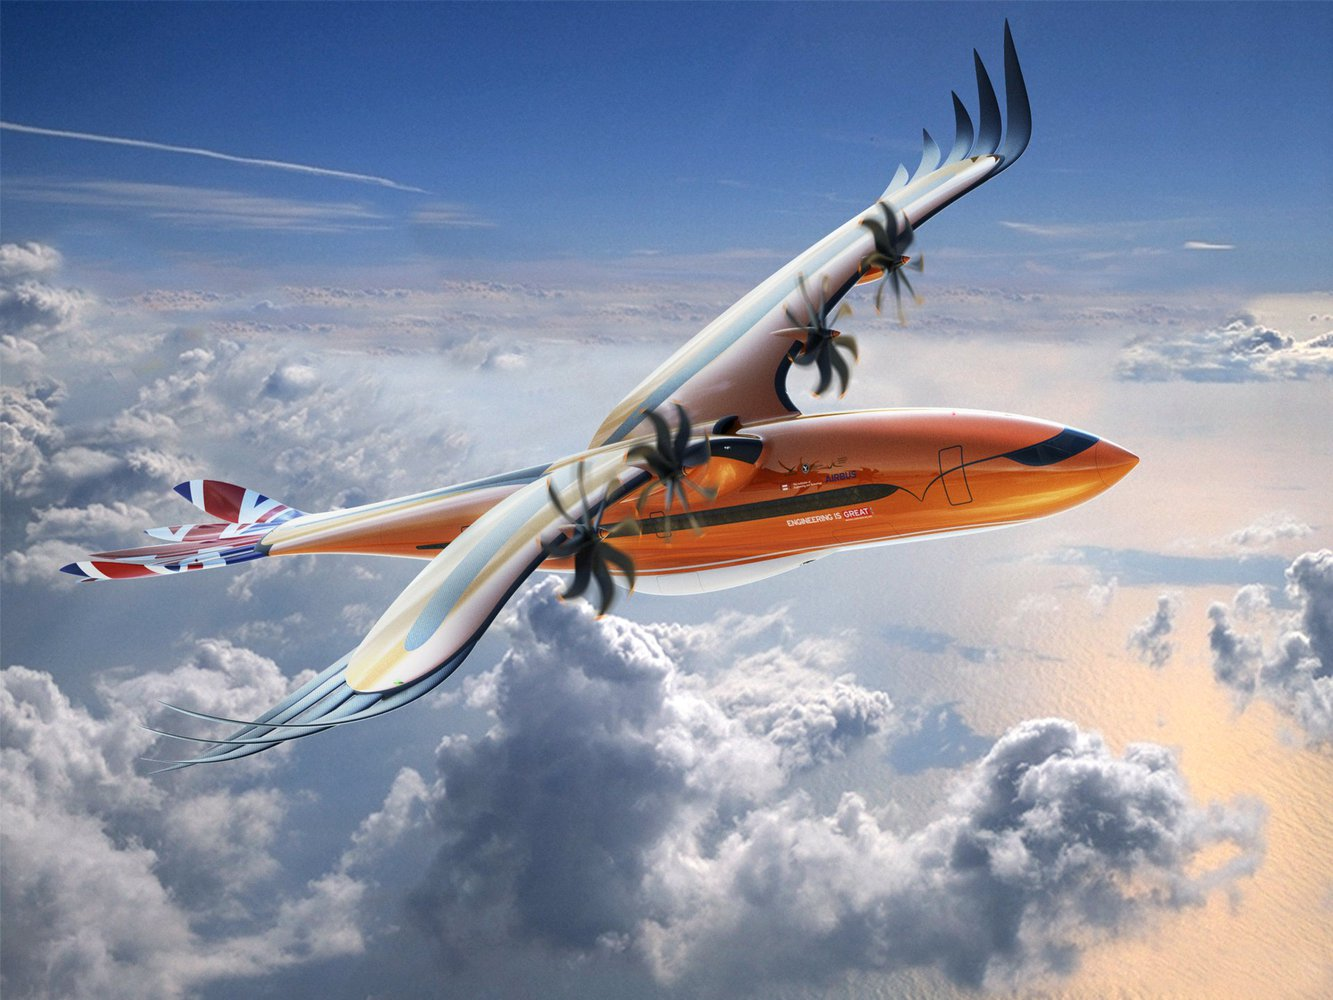 Airbus-Bird-of-Prey-concept-plane.jpg